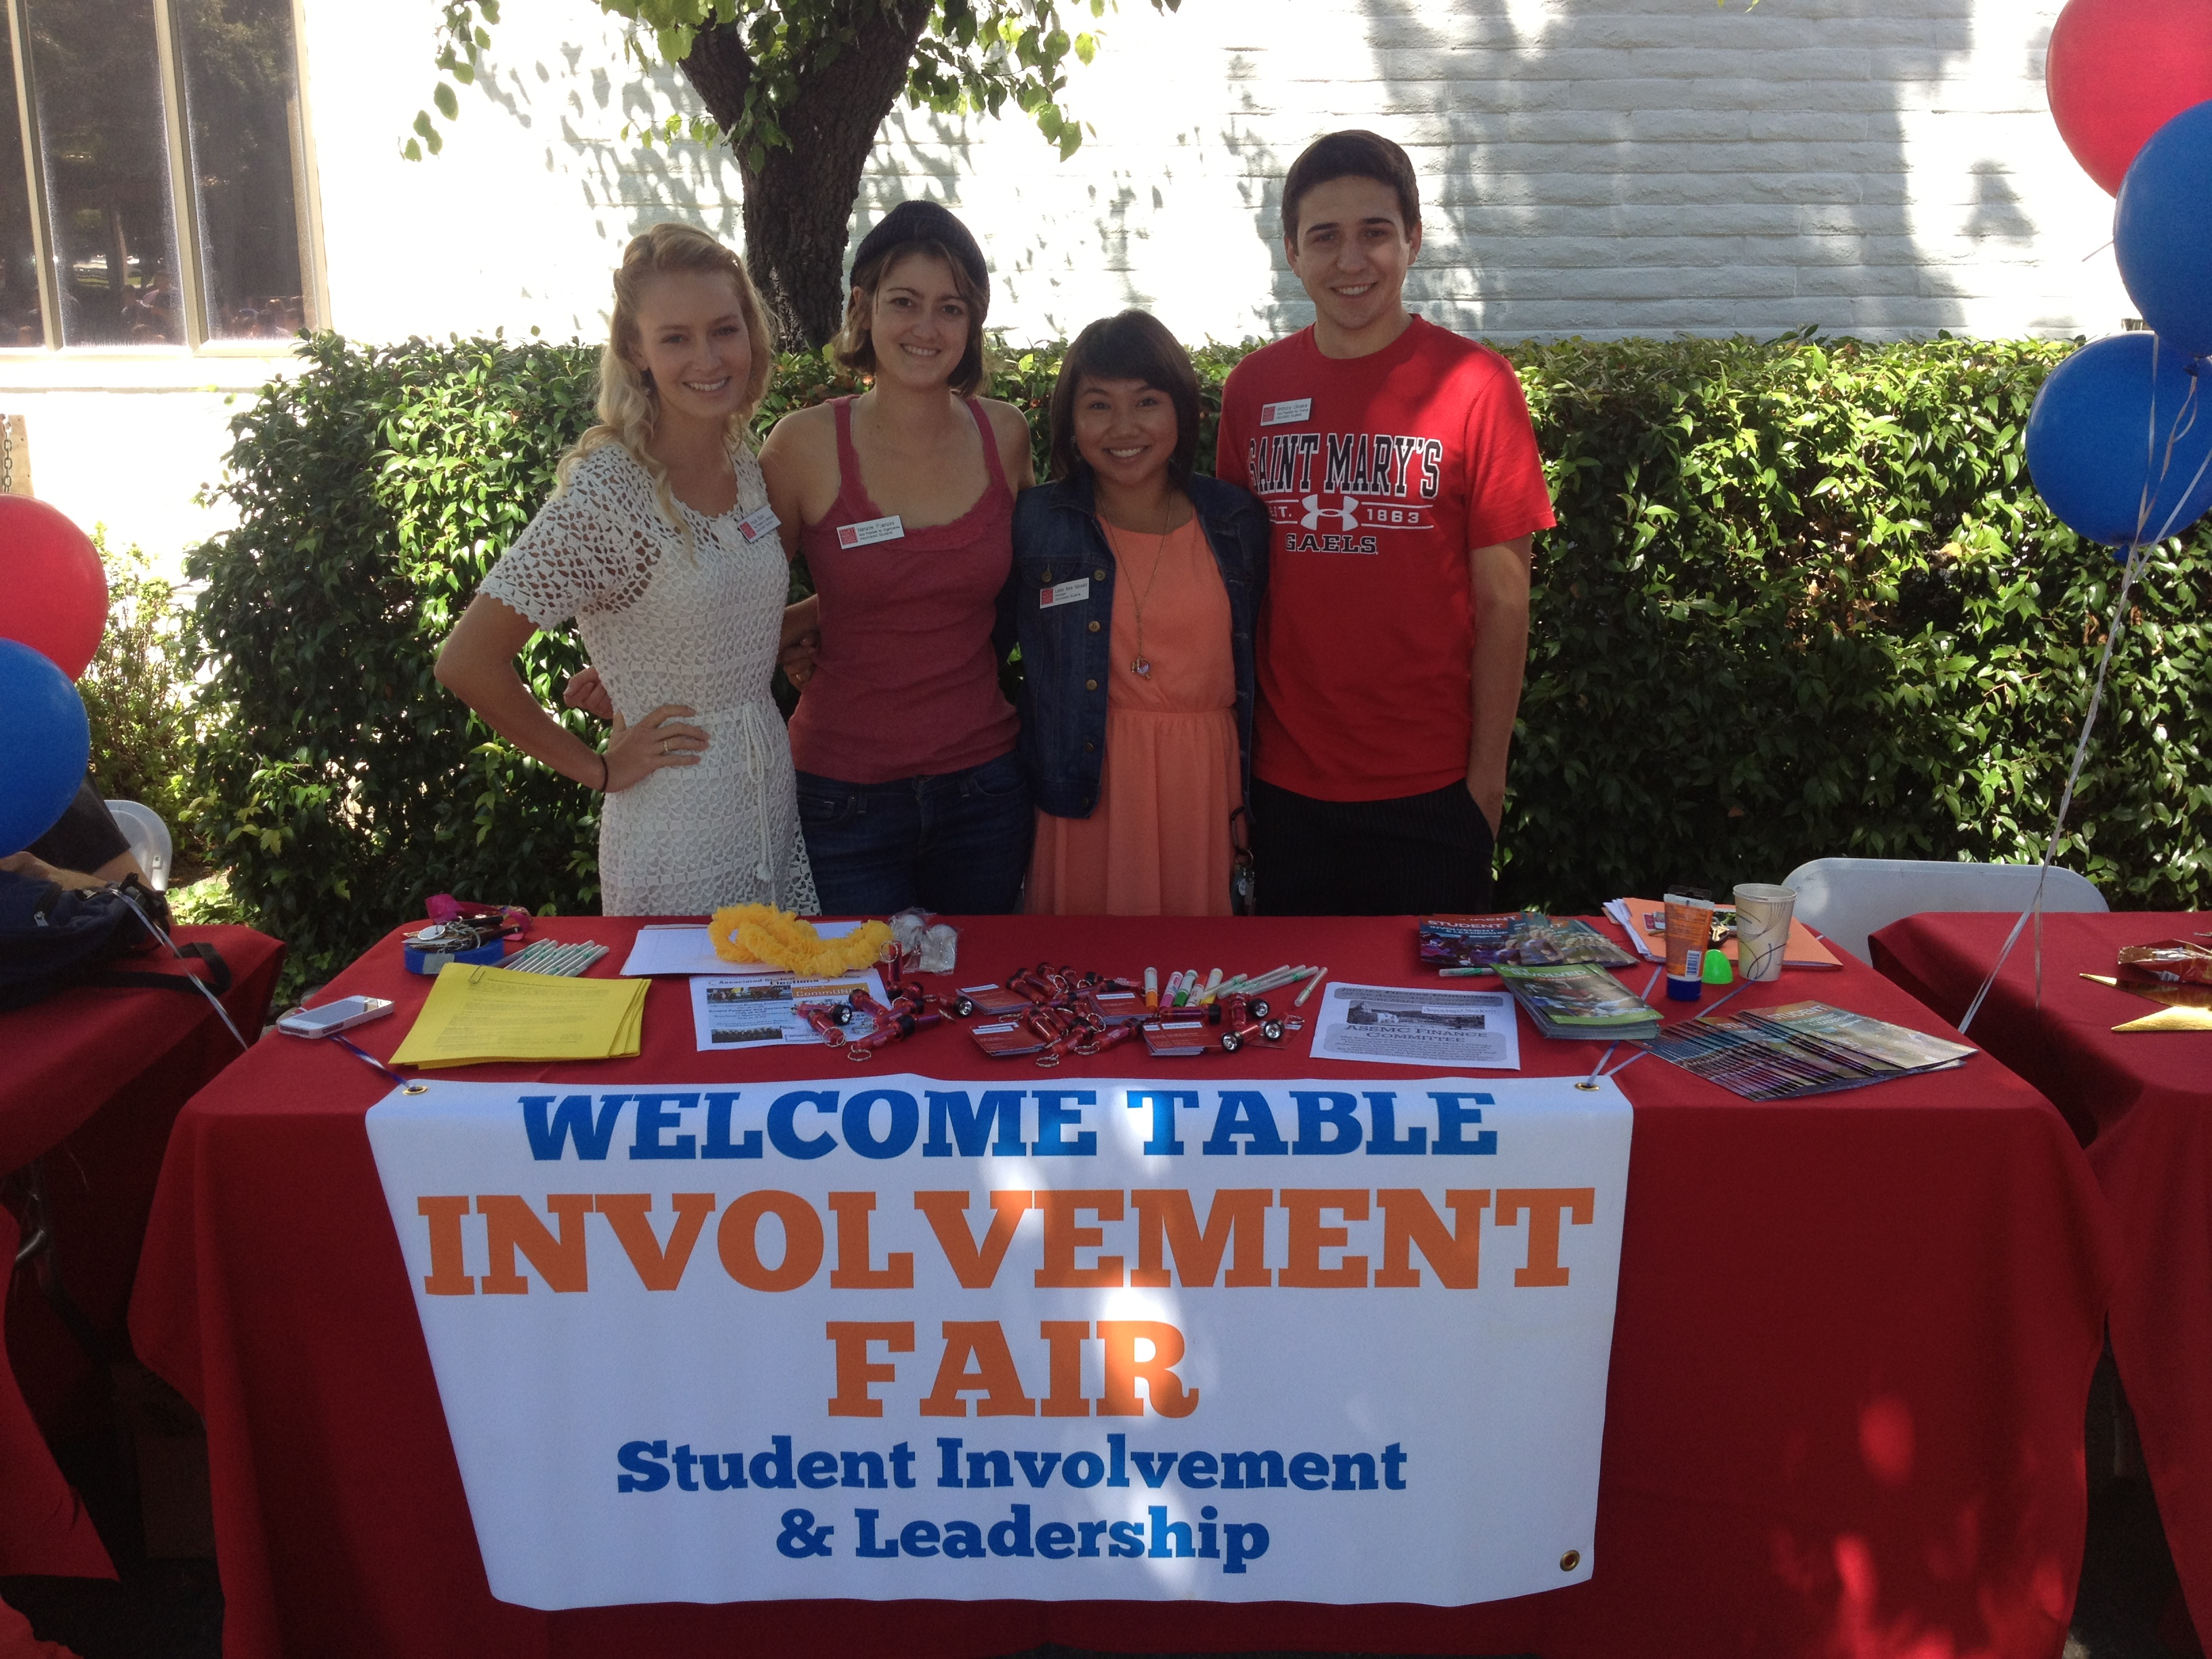 Welcome Table for Involvement Fair Picture